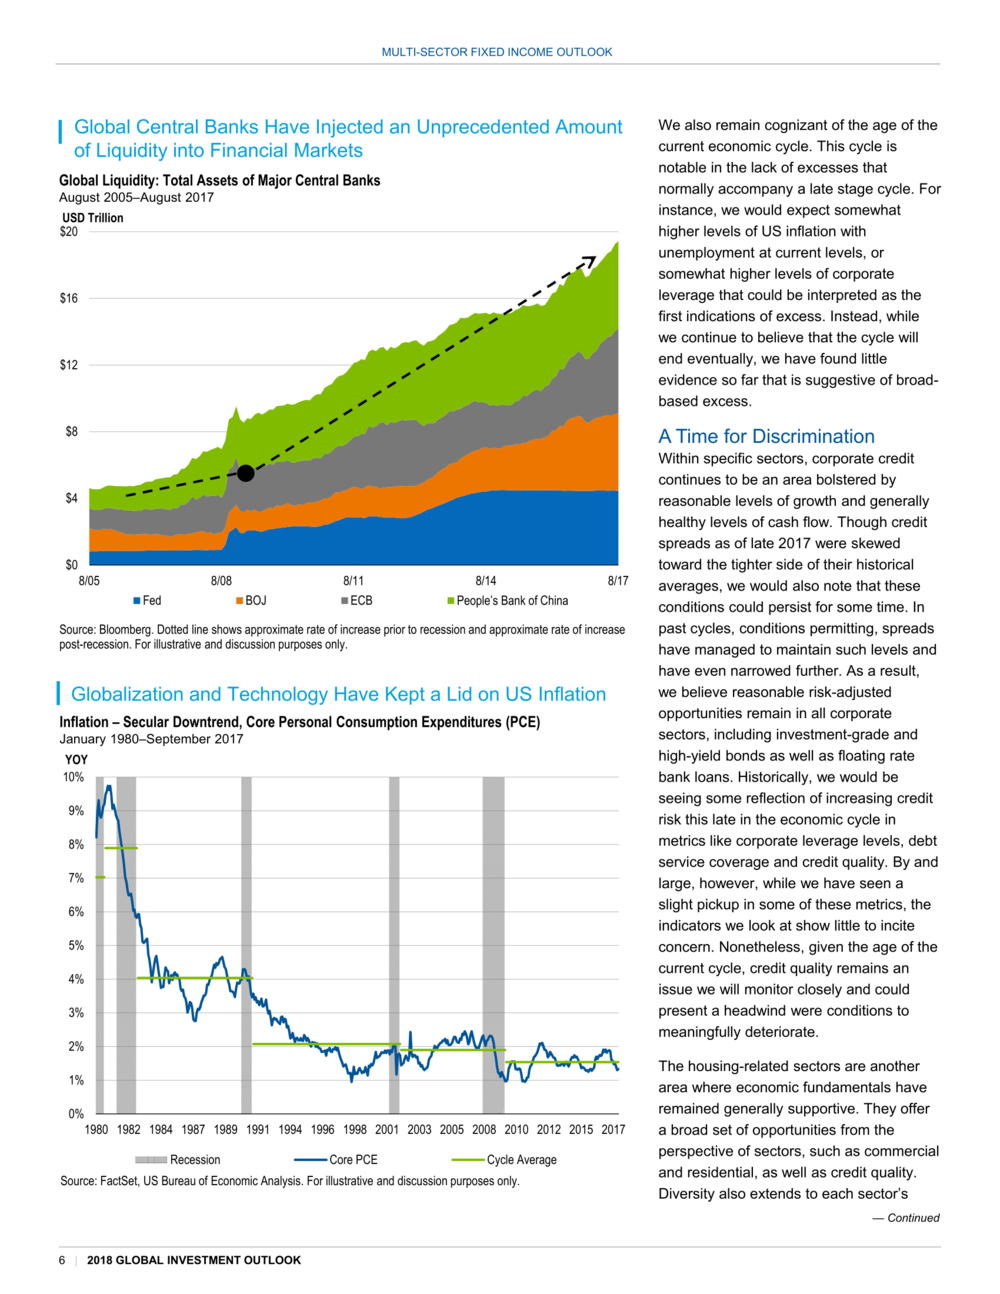 Franklin Templeton 2018 Outlook-08.png